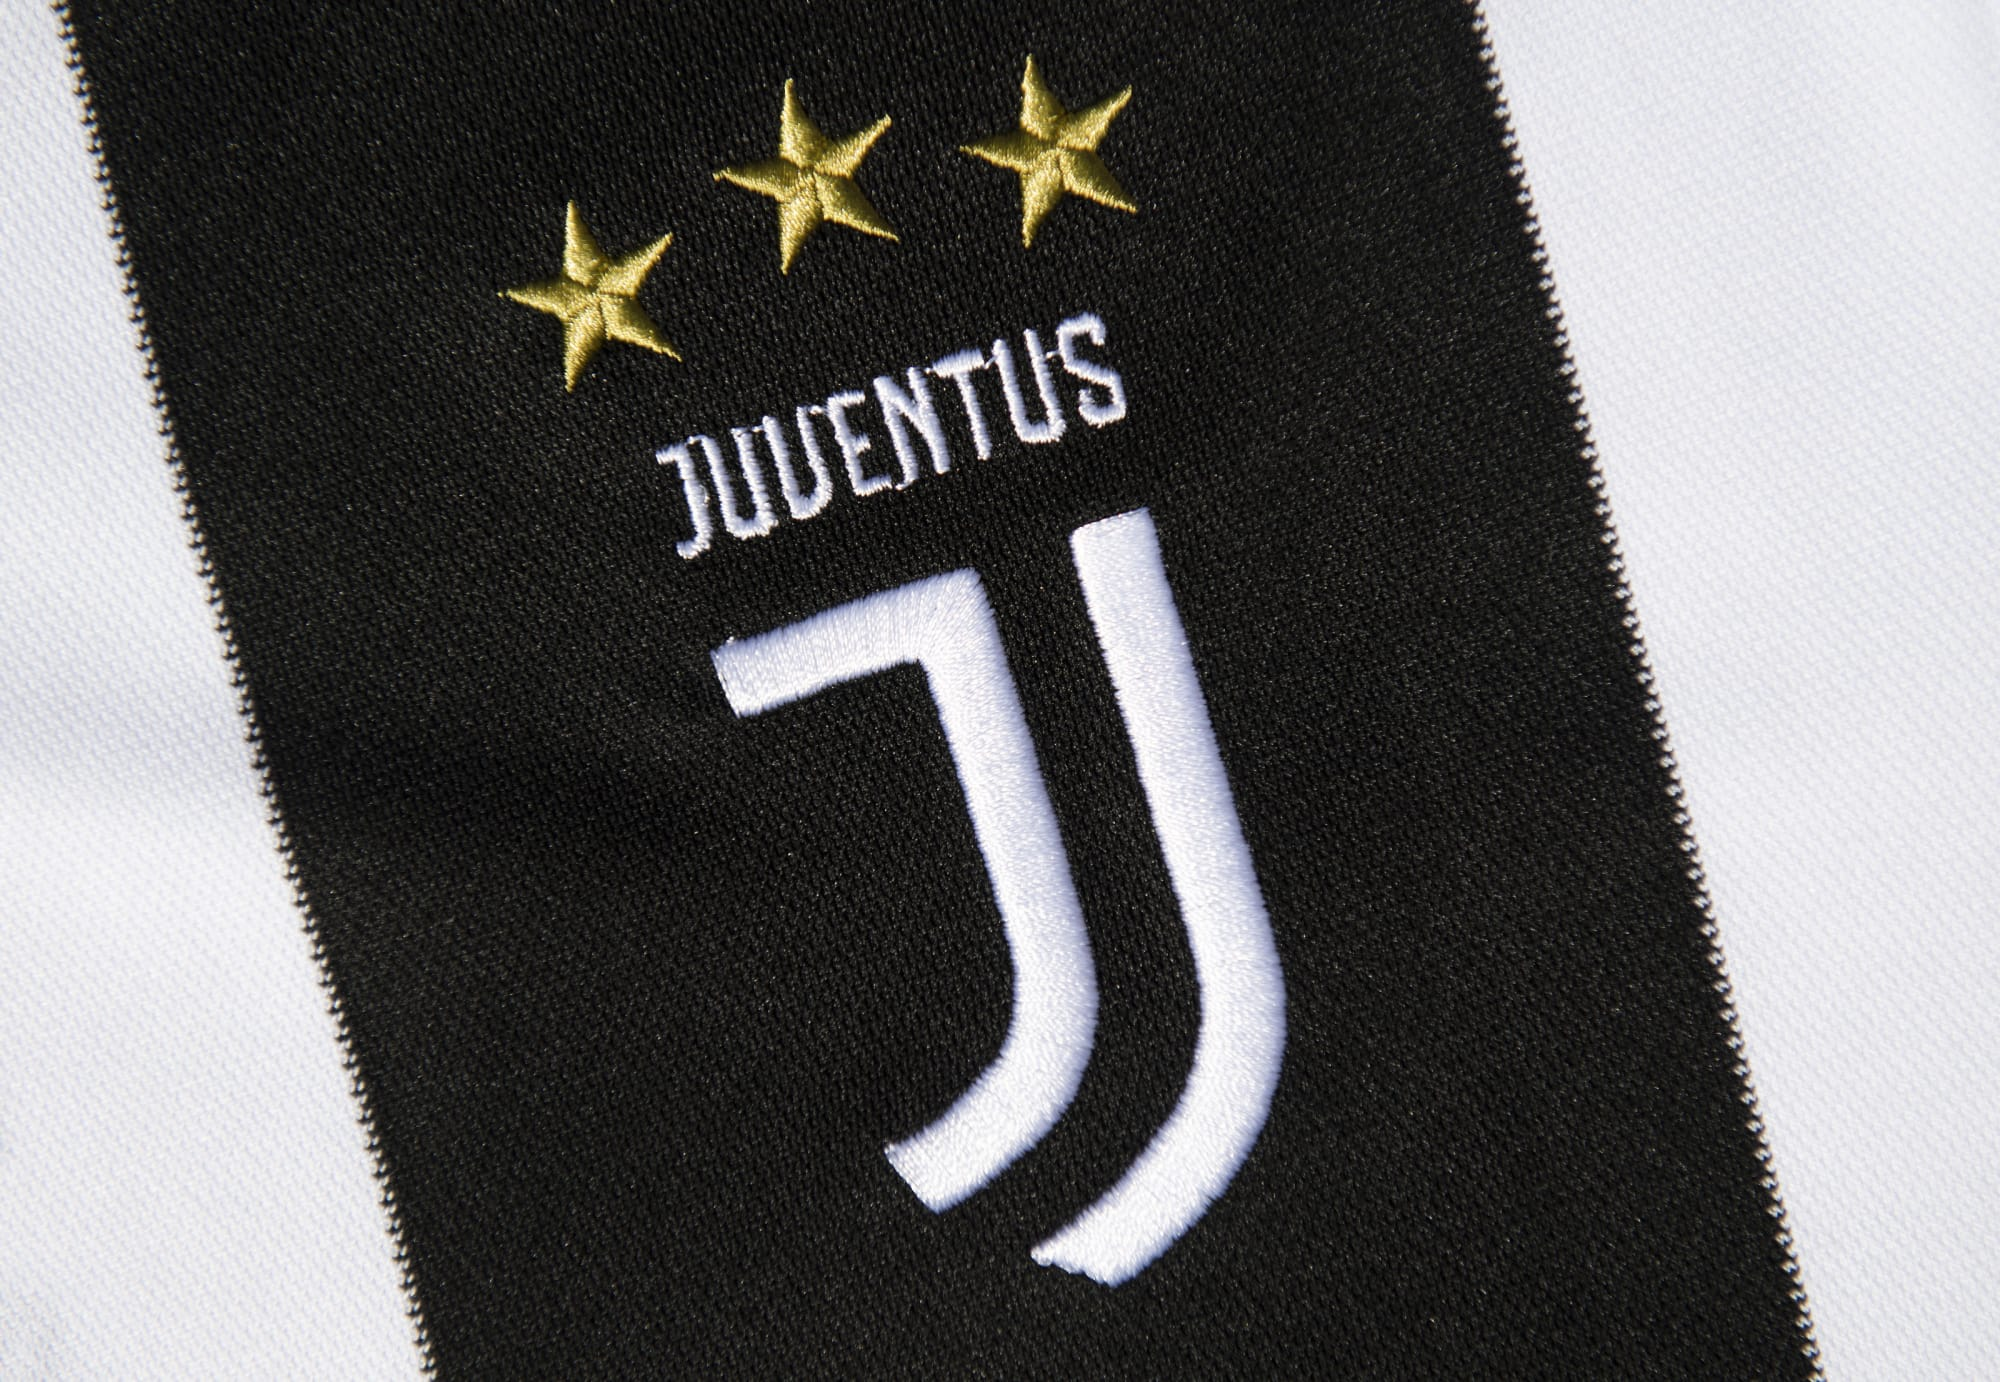 Juventus are showing interest in one of the world's best sporting directors